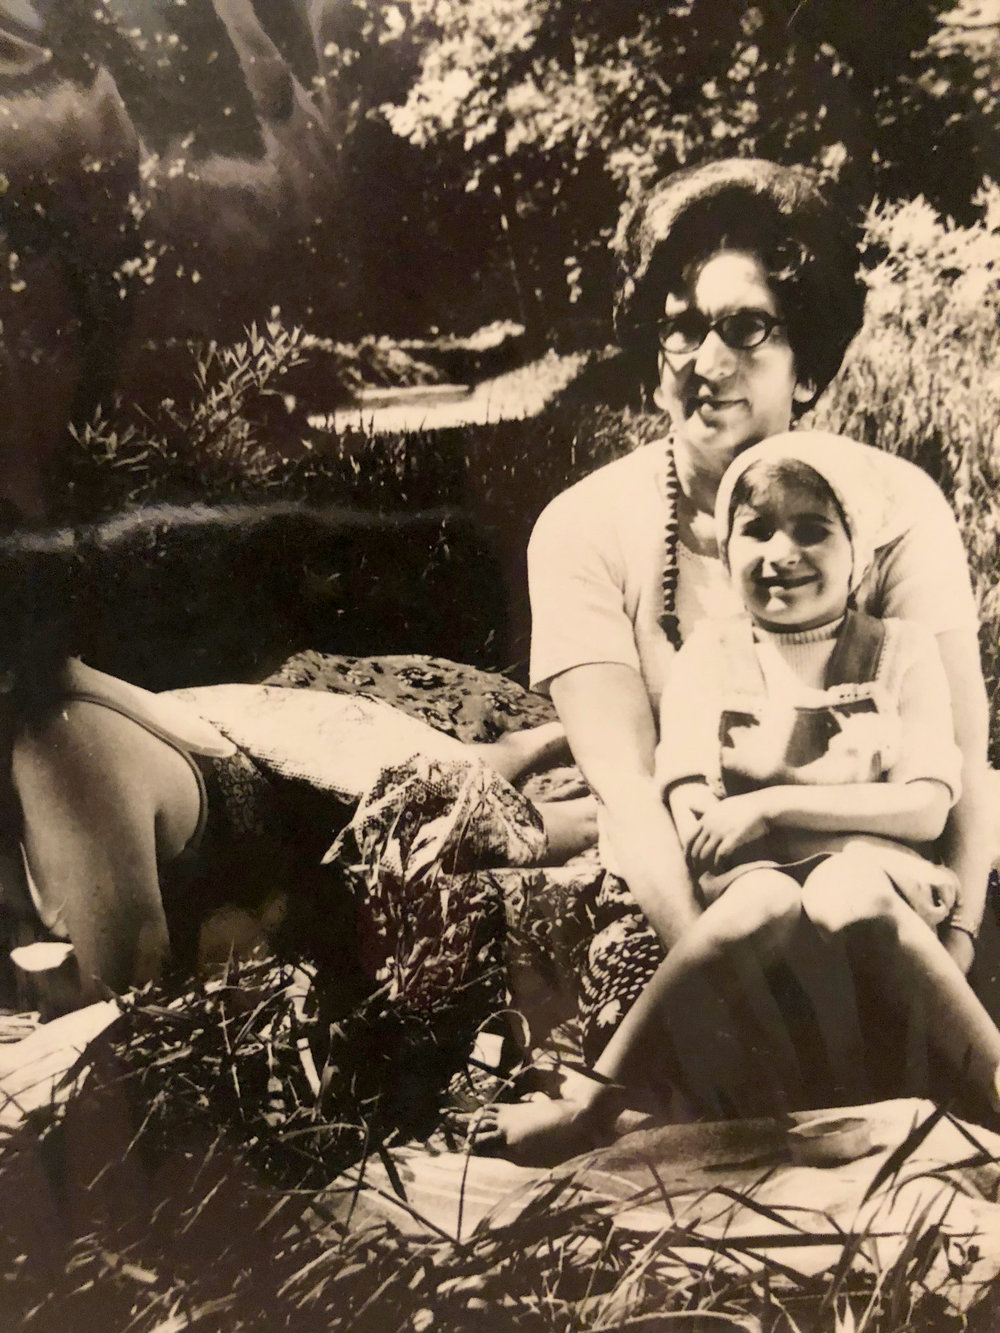 Sasha around age 7 with her Grandmother at a dacha right before they came to America.